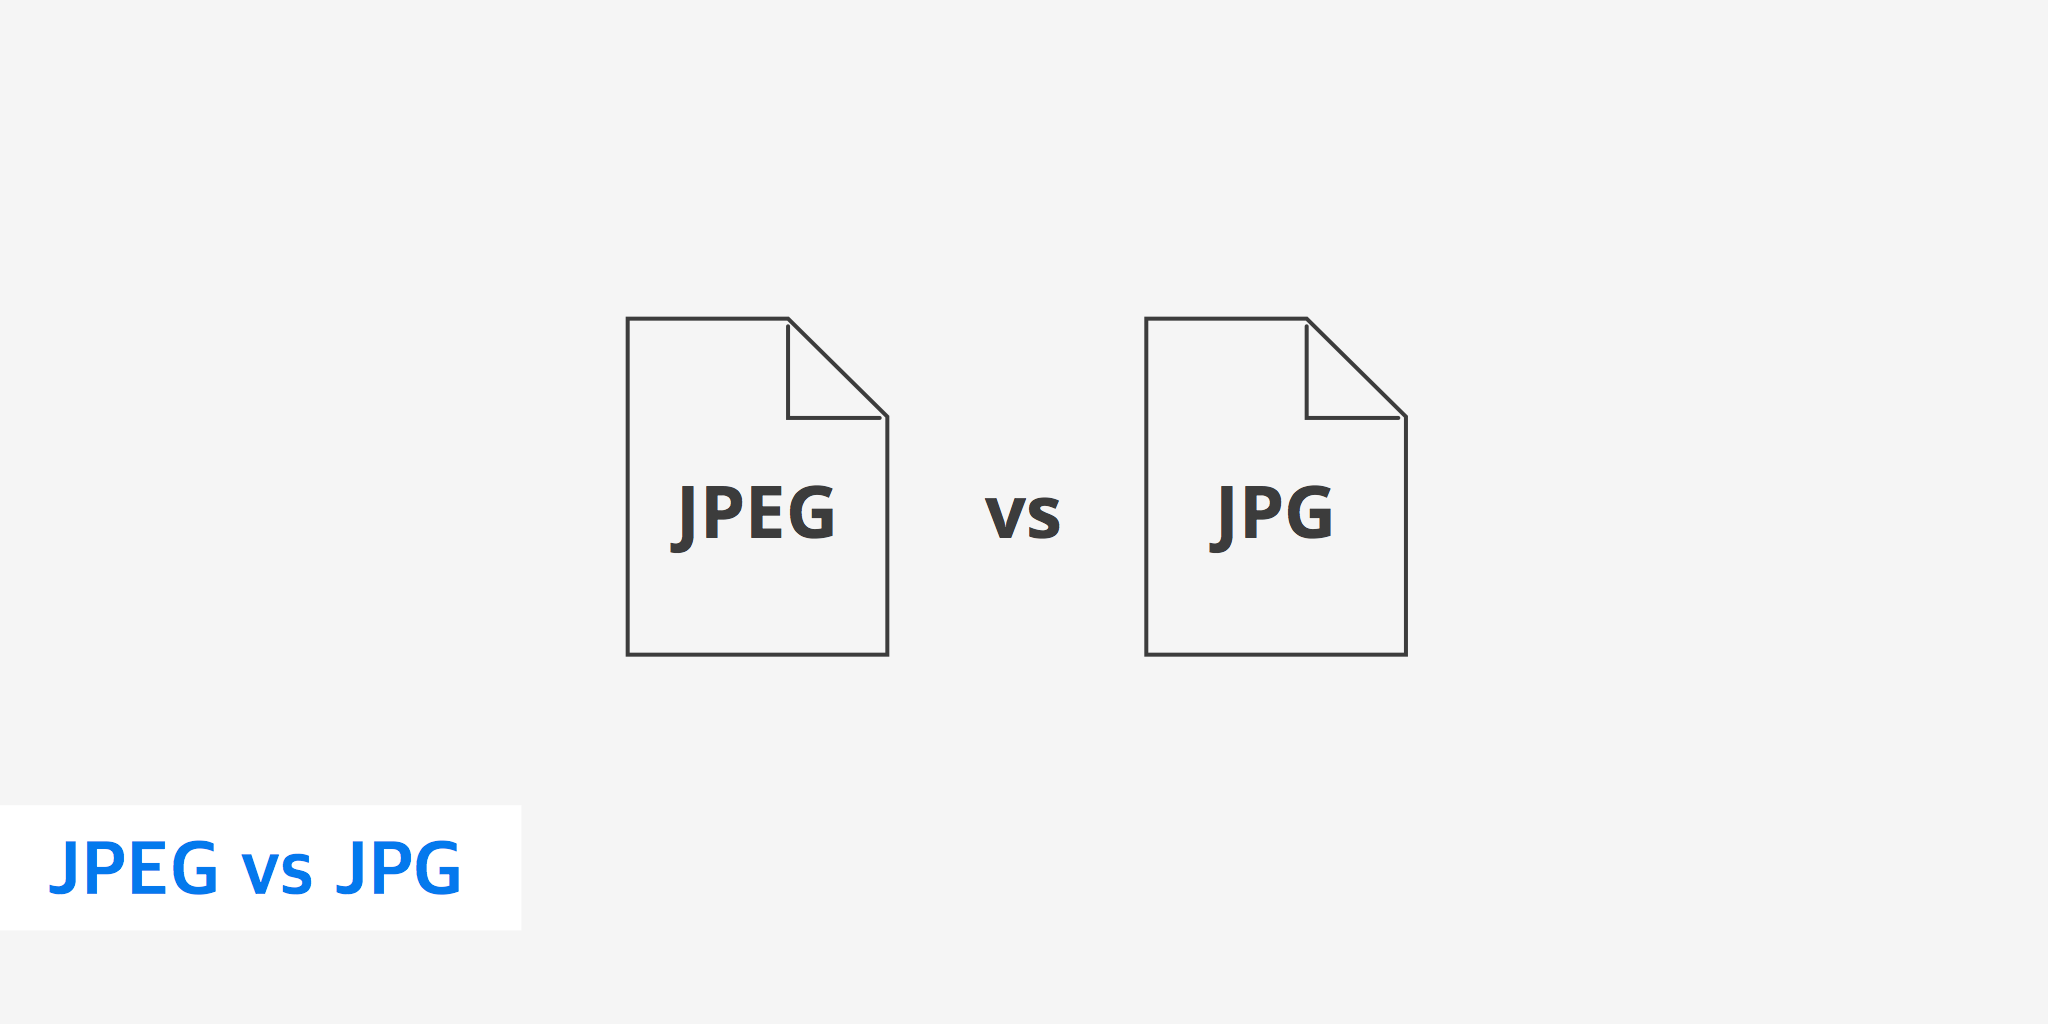 Difference Between JPG and JPEG